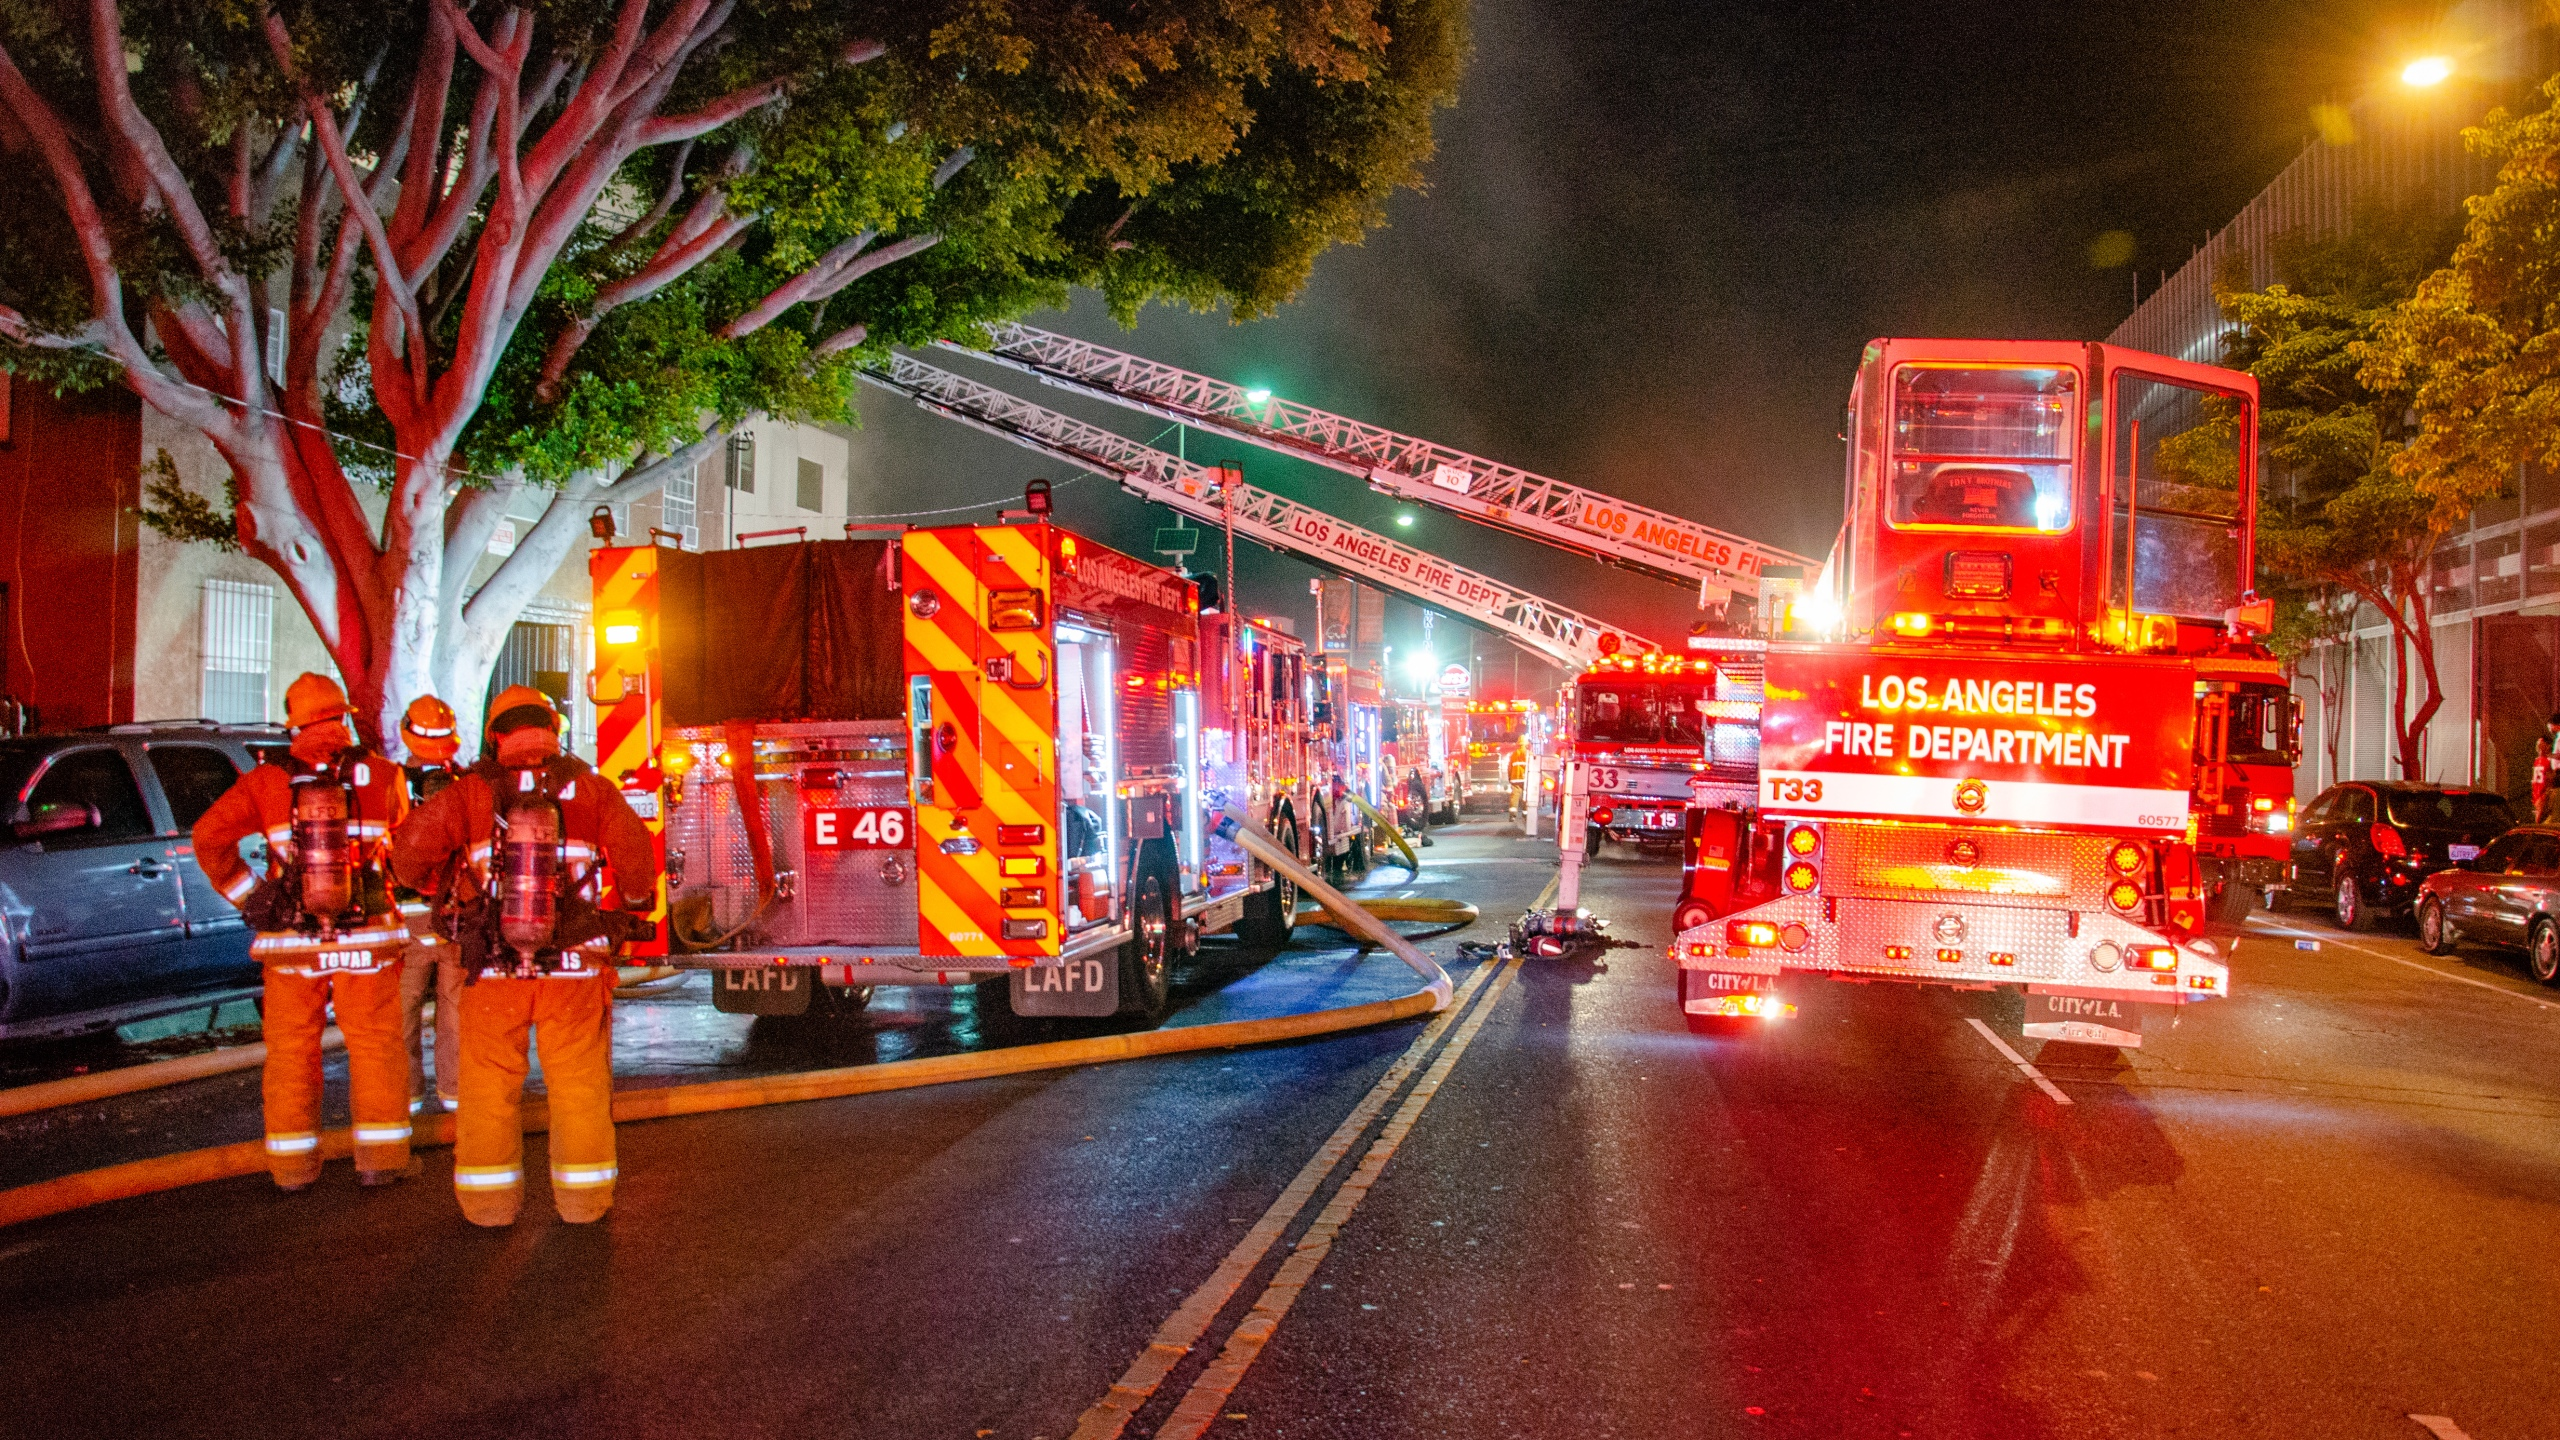 Firefighters respond to an apartment building fire in the Historic South-Central neigborhood of Los Angeles on May 16, 2020. (L.A. Fire Department)